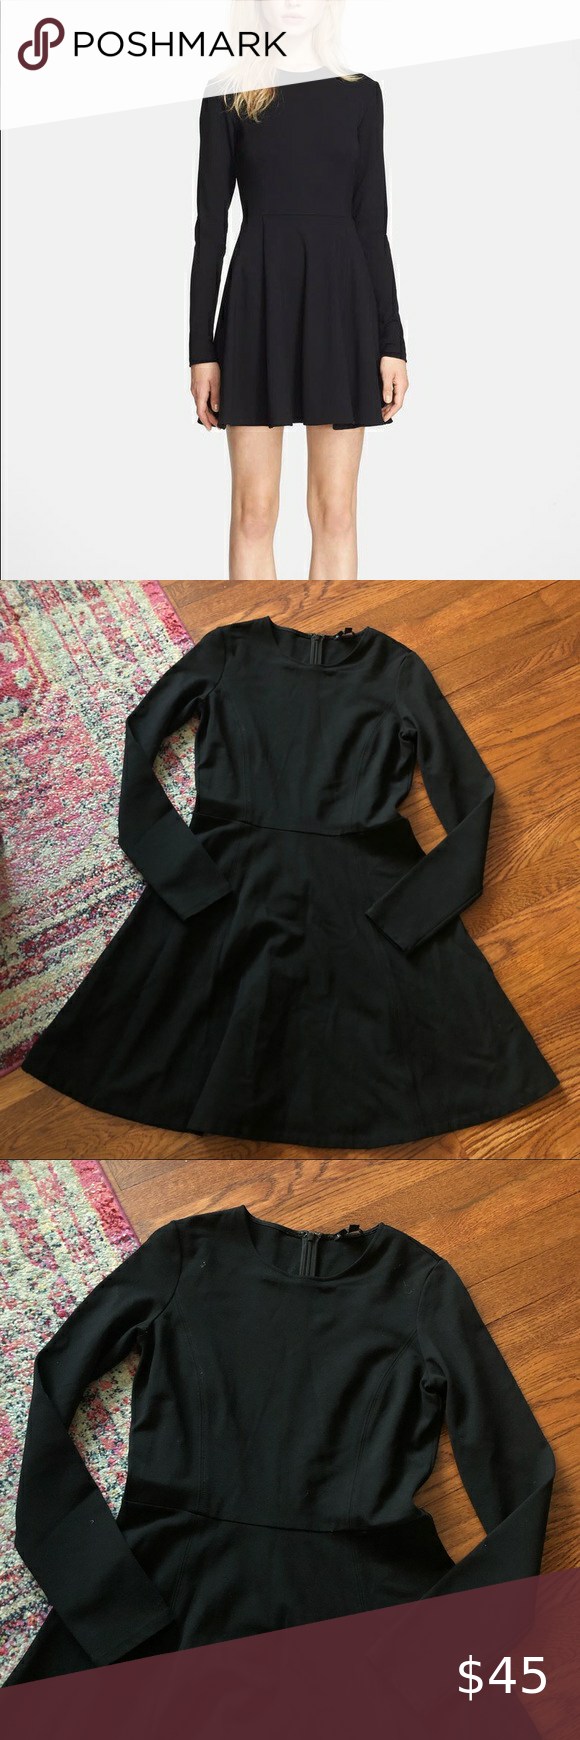 Theory Tillora Black Long Sleeve Fit Flare Dress Fit Flare Dress Fit Flare Black Long Sleeve [ 1740 x 580 Pixel ]